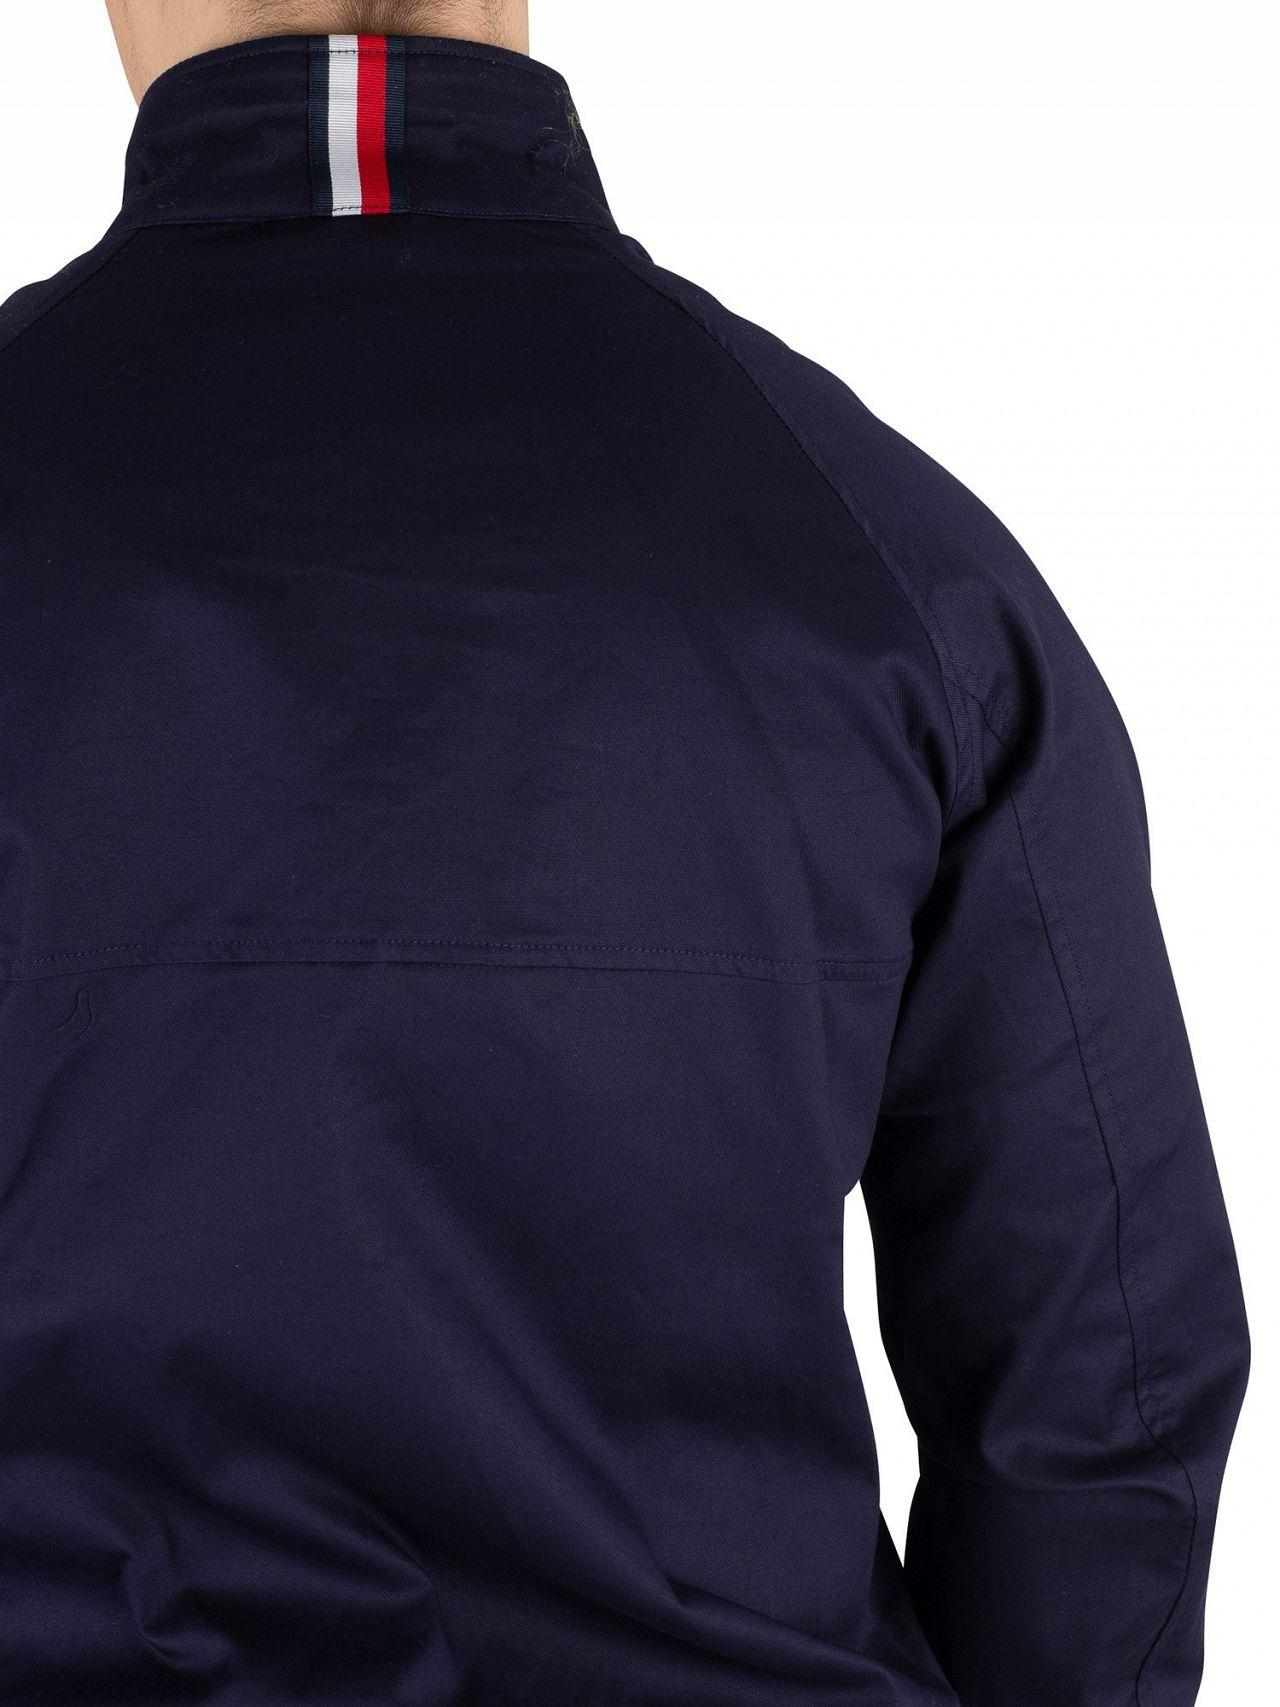 f95d63aa Tommy Hilfiger Maritime Blue Icon Cotton Harrington Jacket in Blue for Men  - Lyst